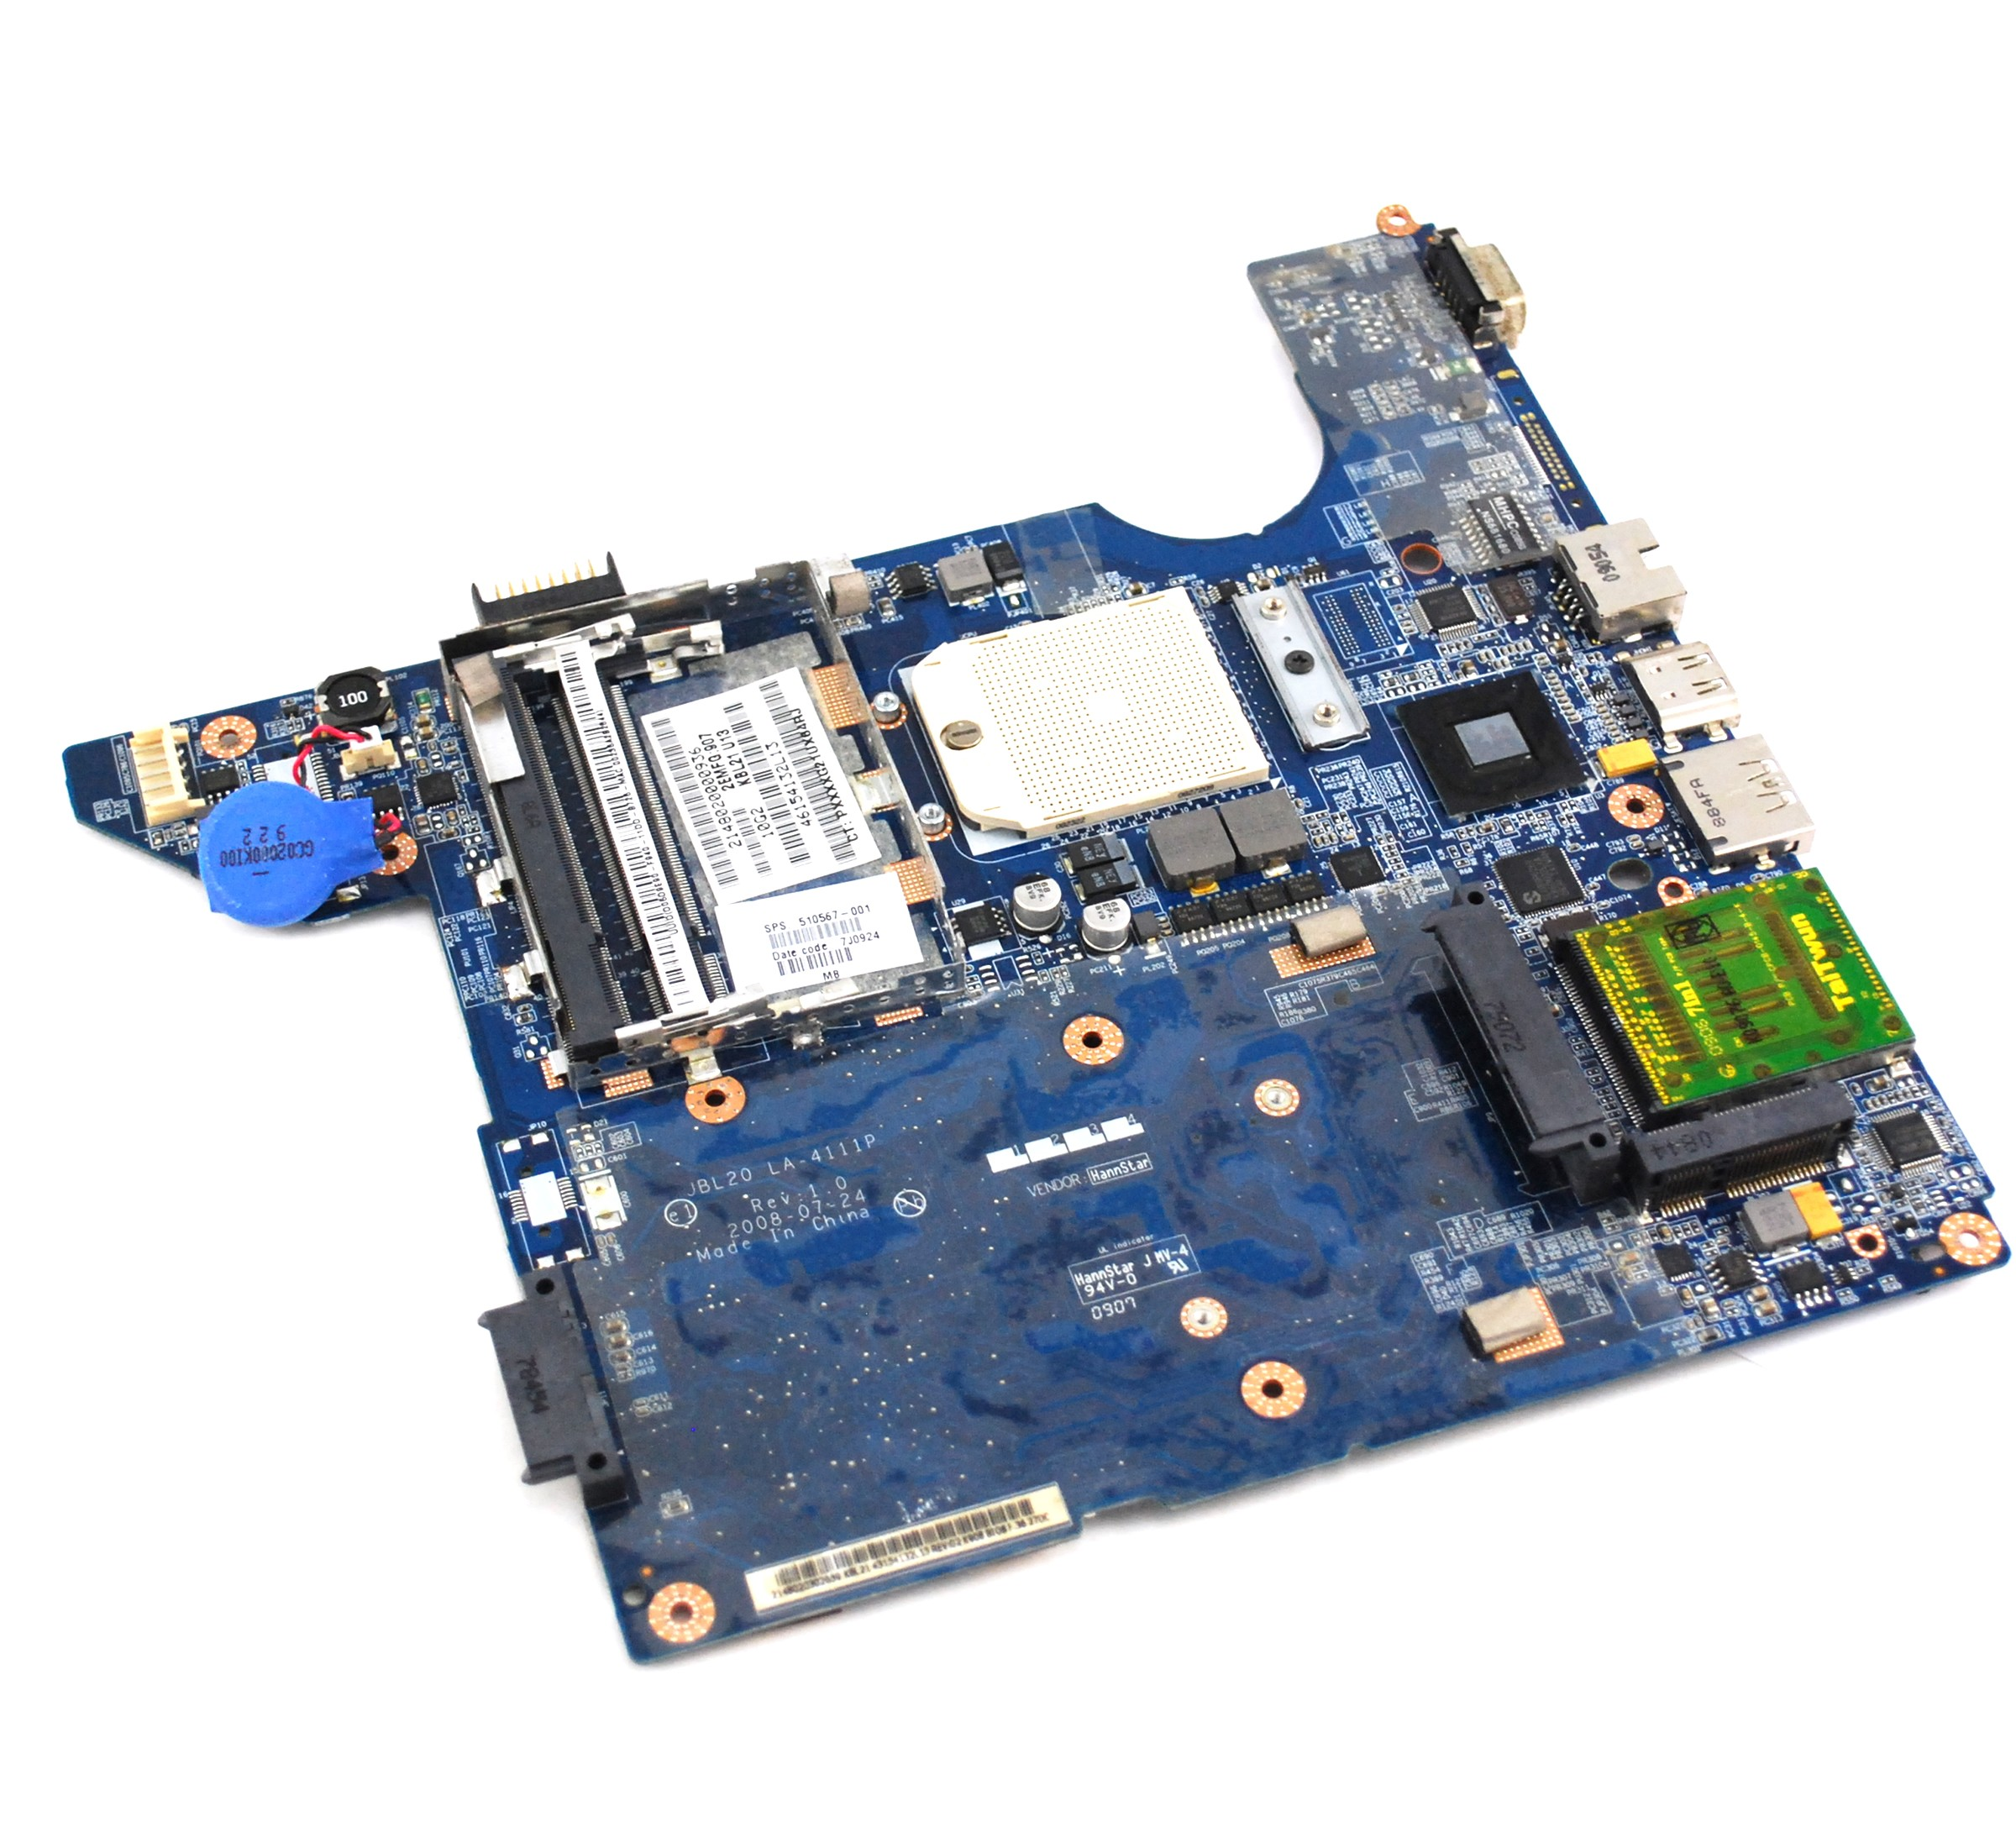 Hp Compaq 510567-001 Laptop Motherboard For Sale